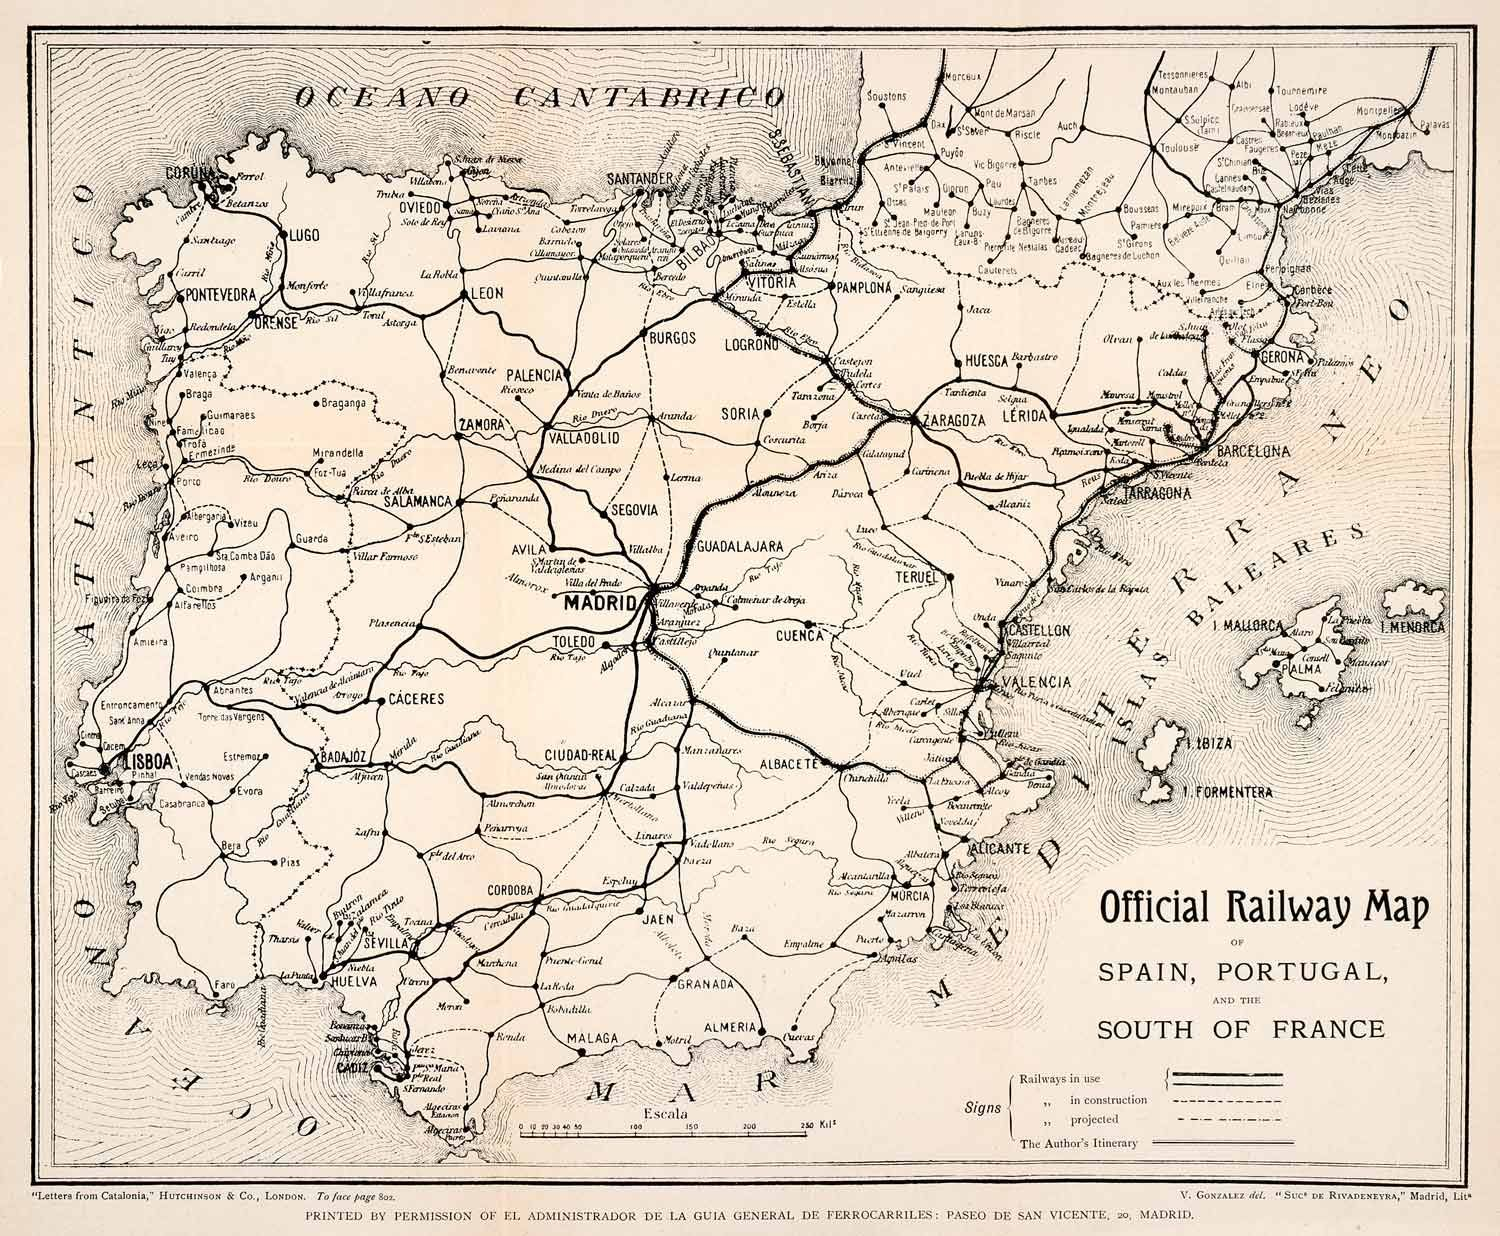 Official Railway Map of Spain, Portugal and South of